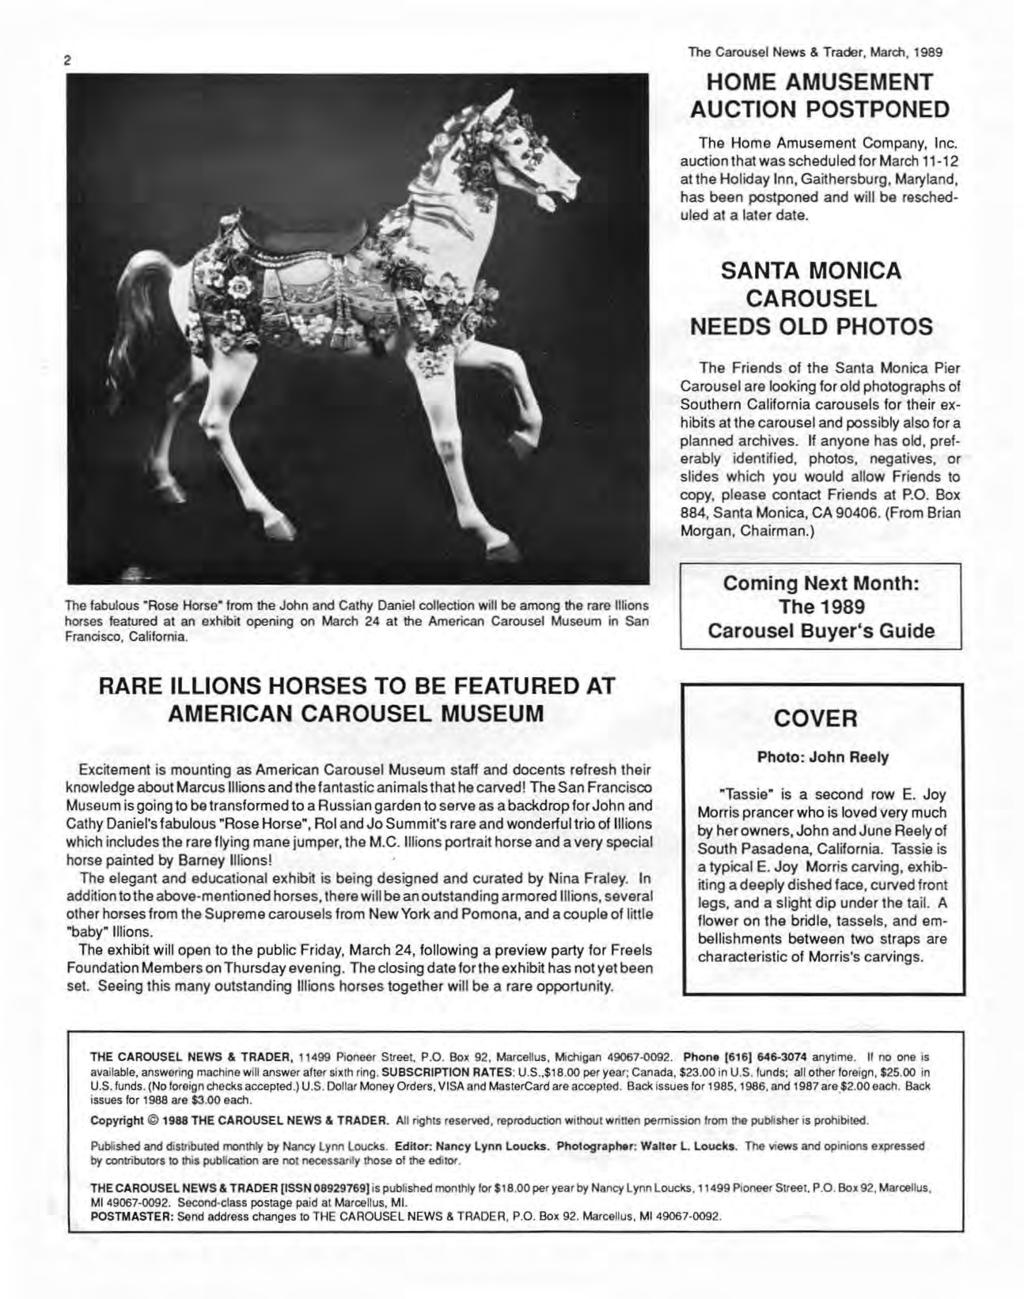 2 The Carousel News & Trader, March, 1989 HOME AMUSEMENT AUCTION POSTPONED The Home Amusement Company, Inc.